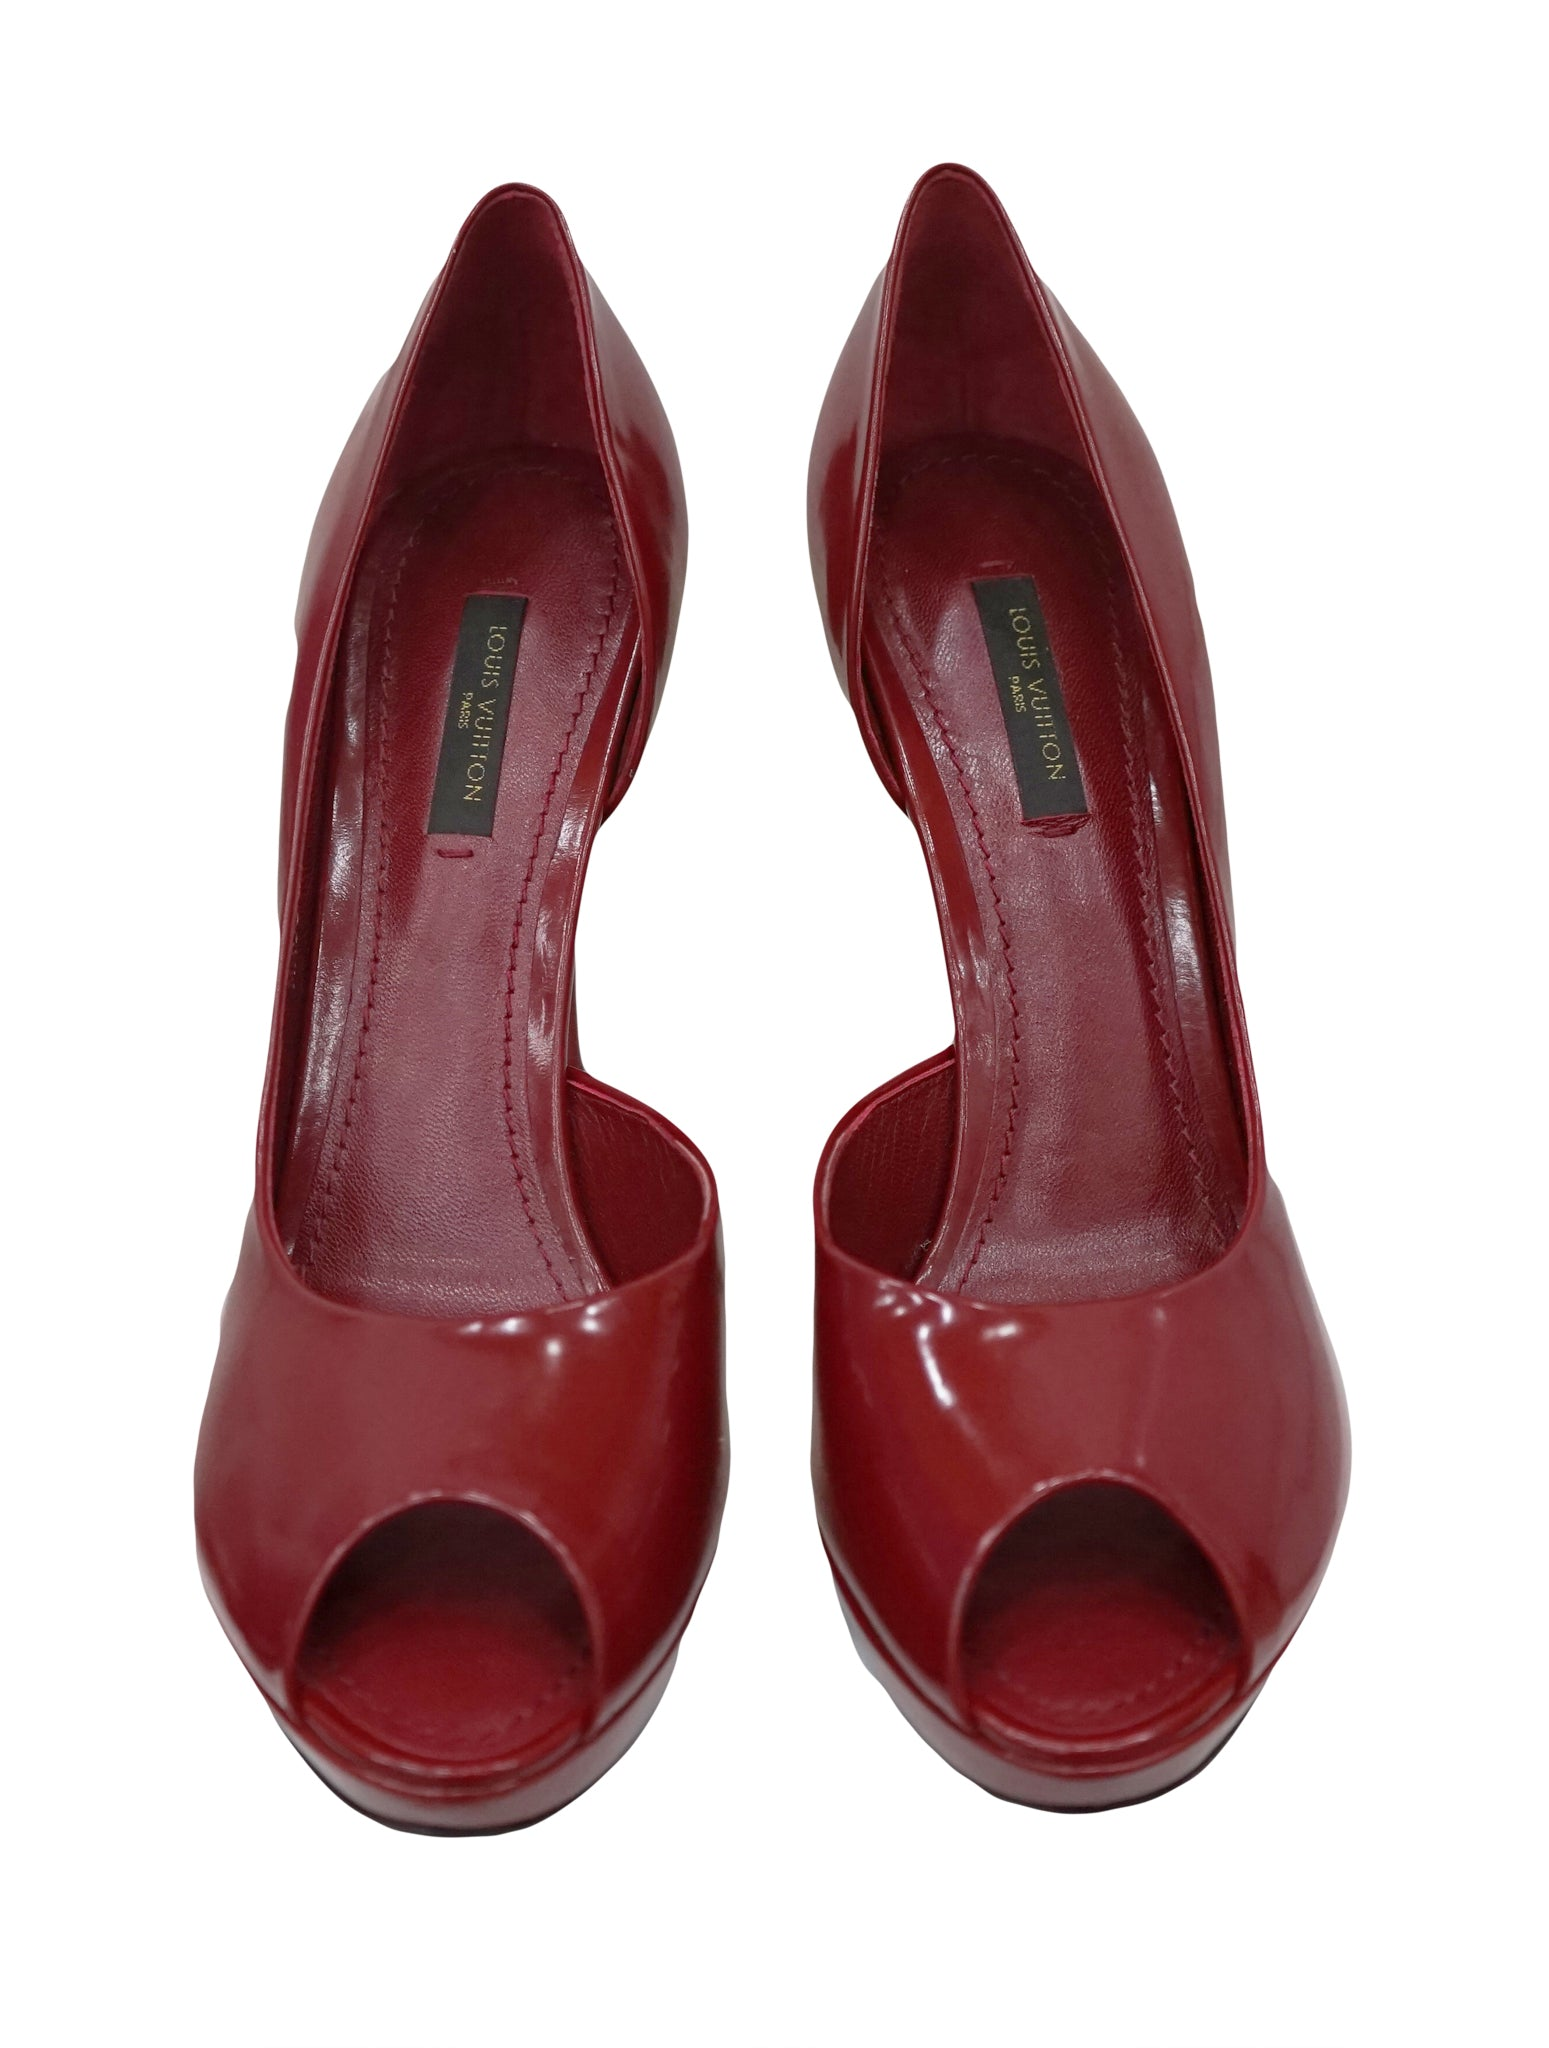 RED LEATHER SENSUAL D'ÓRSAY PUMPS